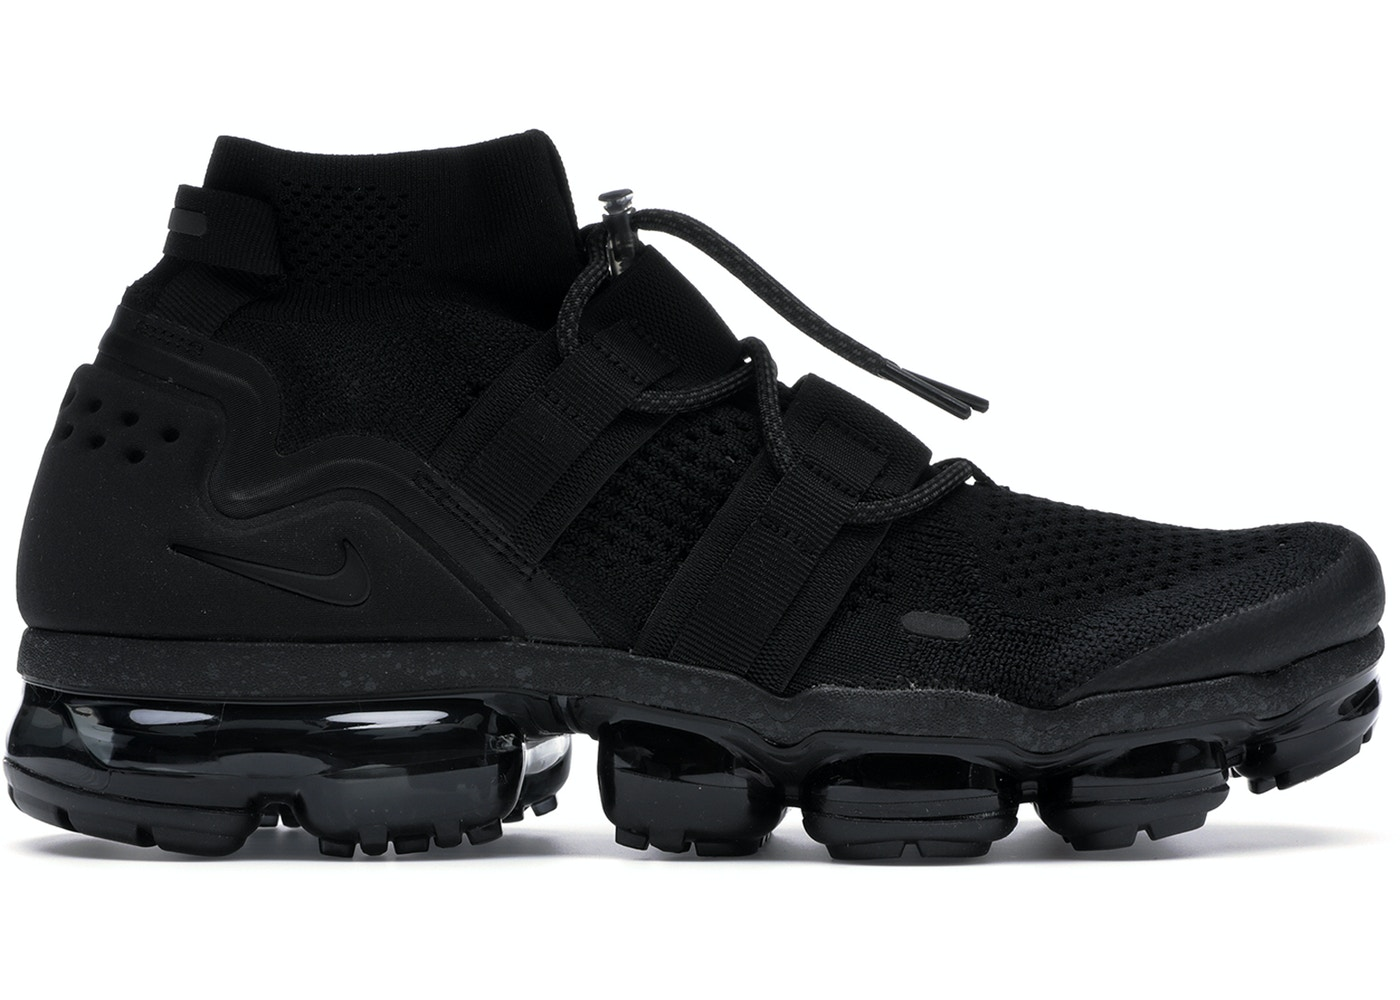 4615d58da7ad Air VaporMax Utility Triple Black - AH6834-001